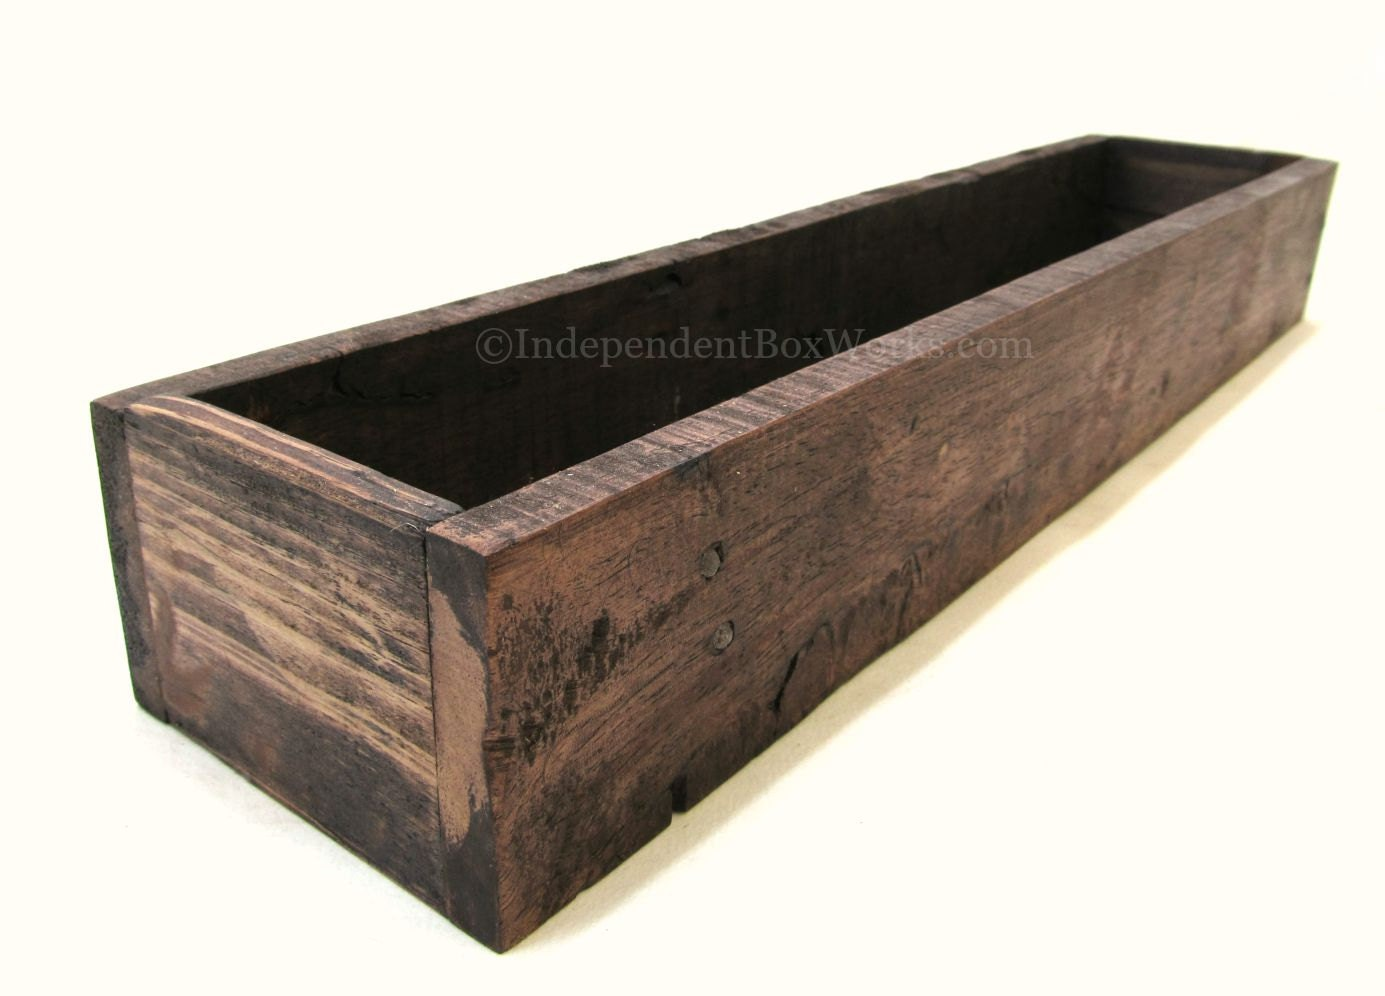 Salvaged pallet wood centerpiece box red mahogany stained